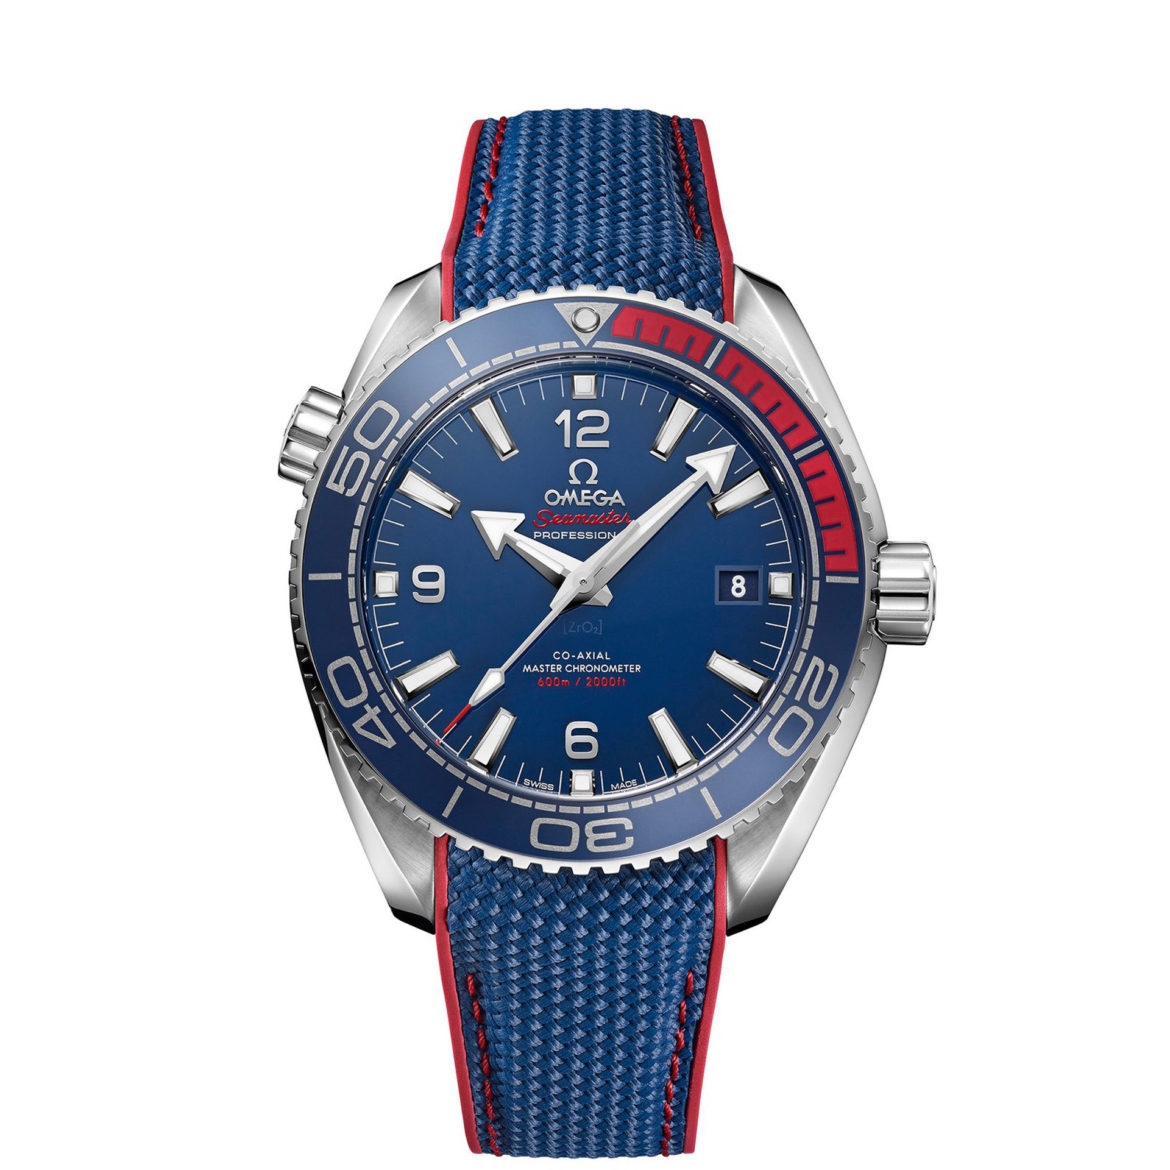 Omega Seamaster Planet Ocean PyeongChang 2018 Limited Edition